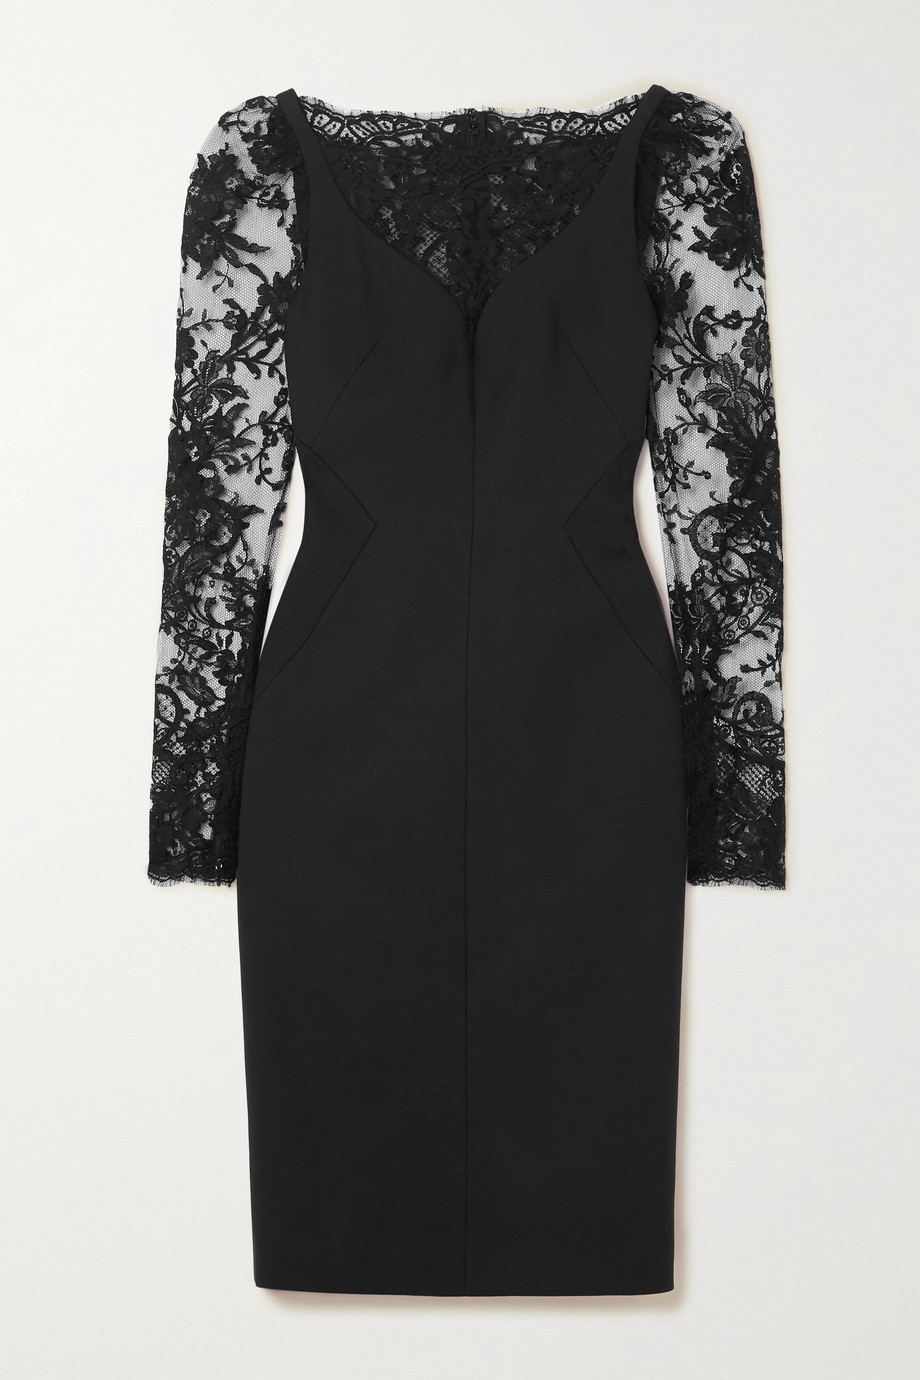 Alexander McQueen Lace-paneled wool-blend cady dress